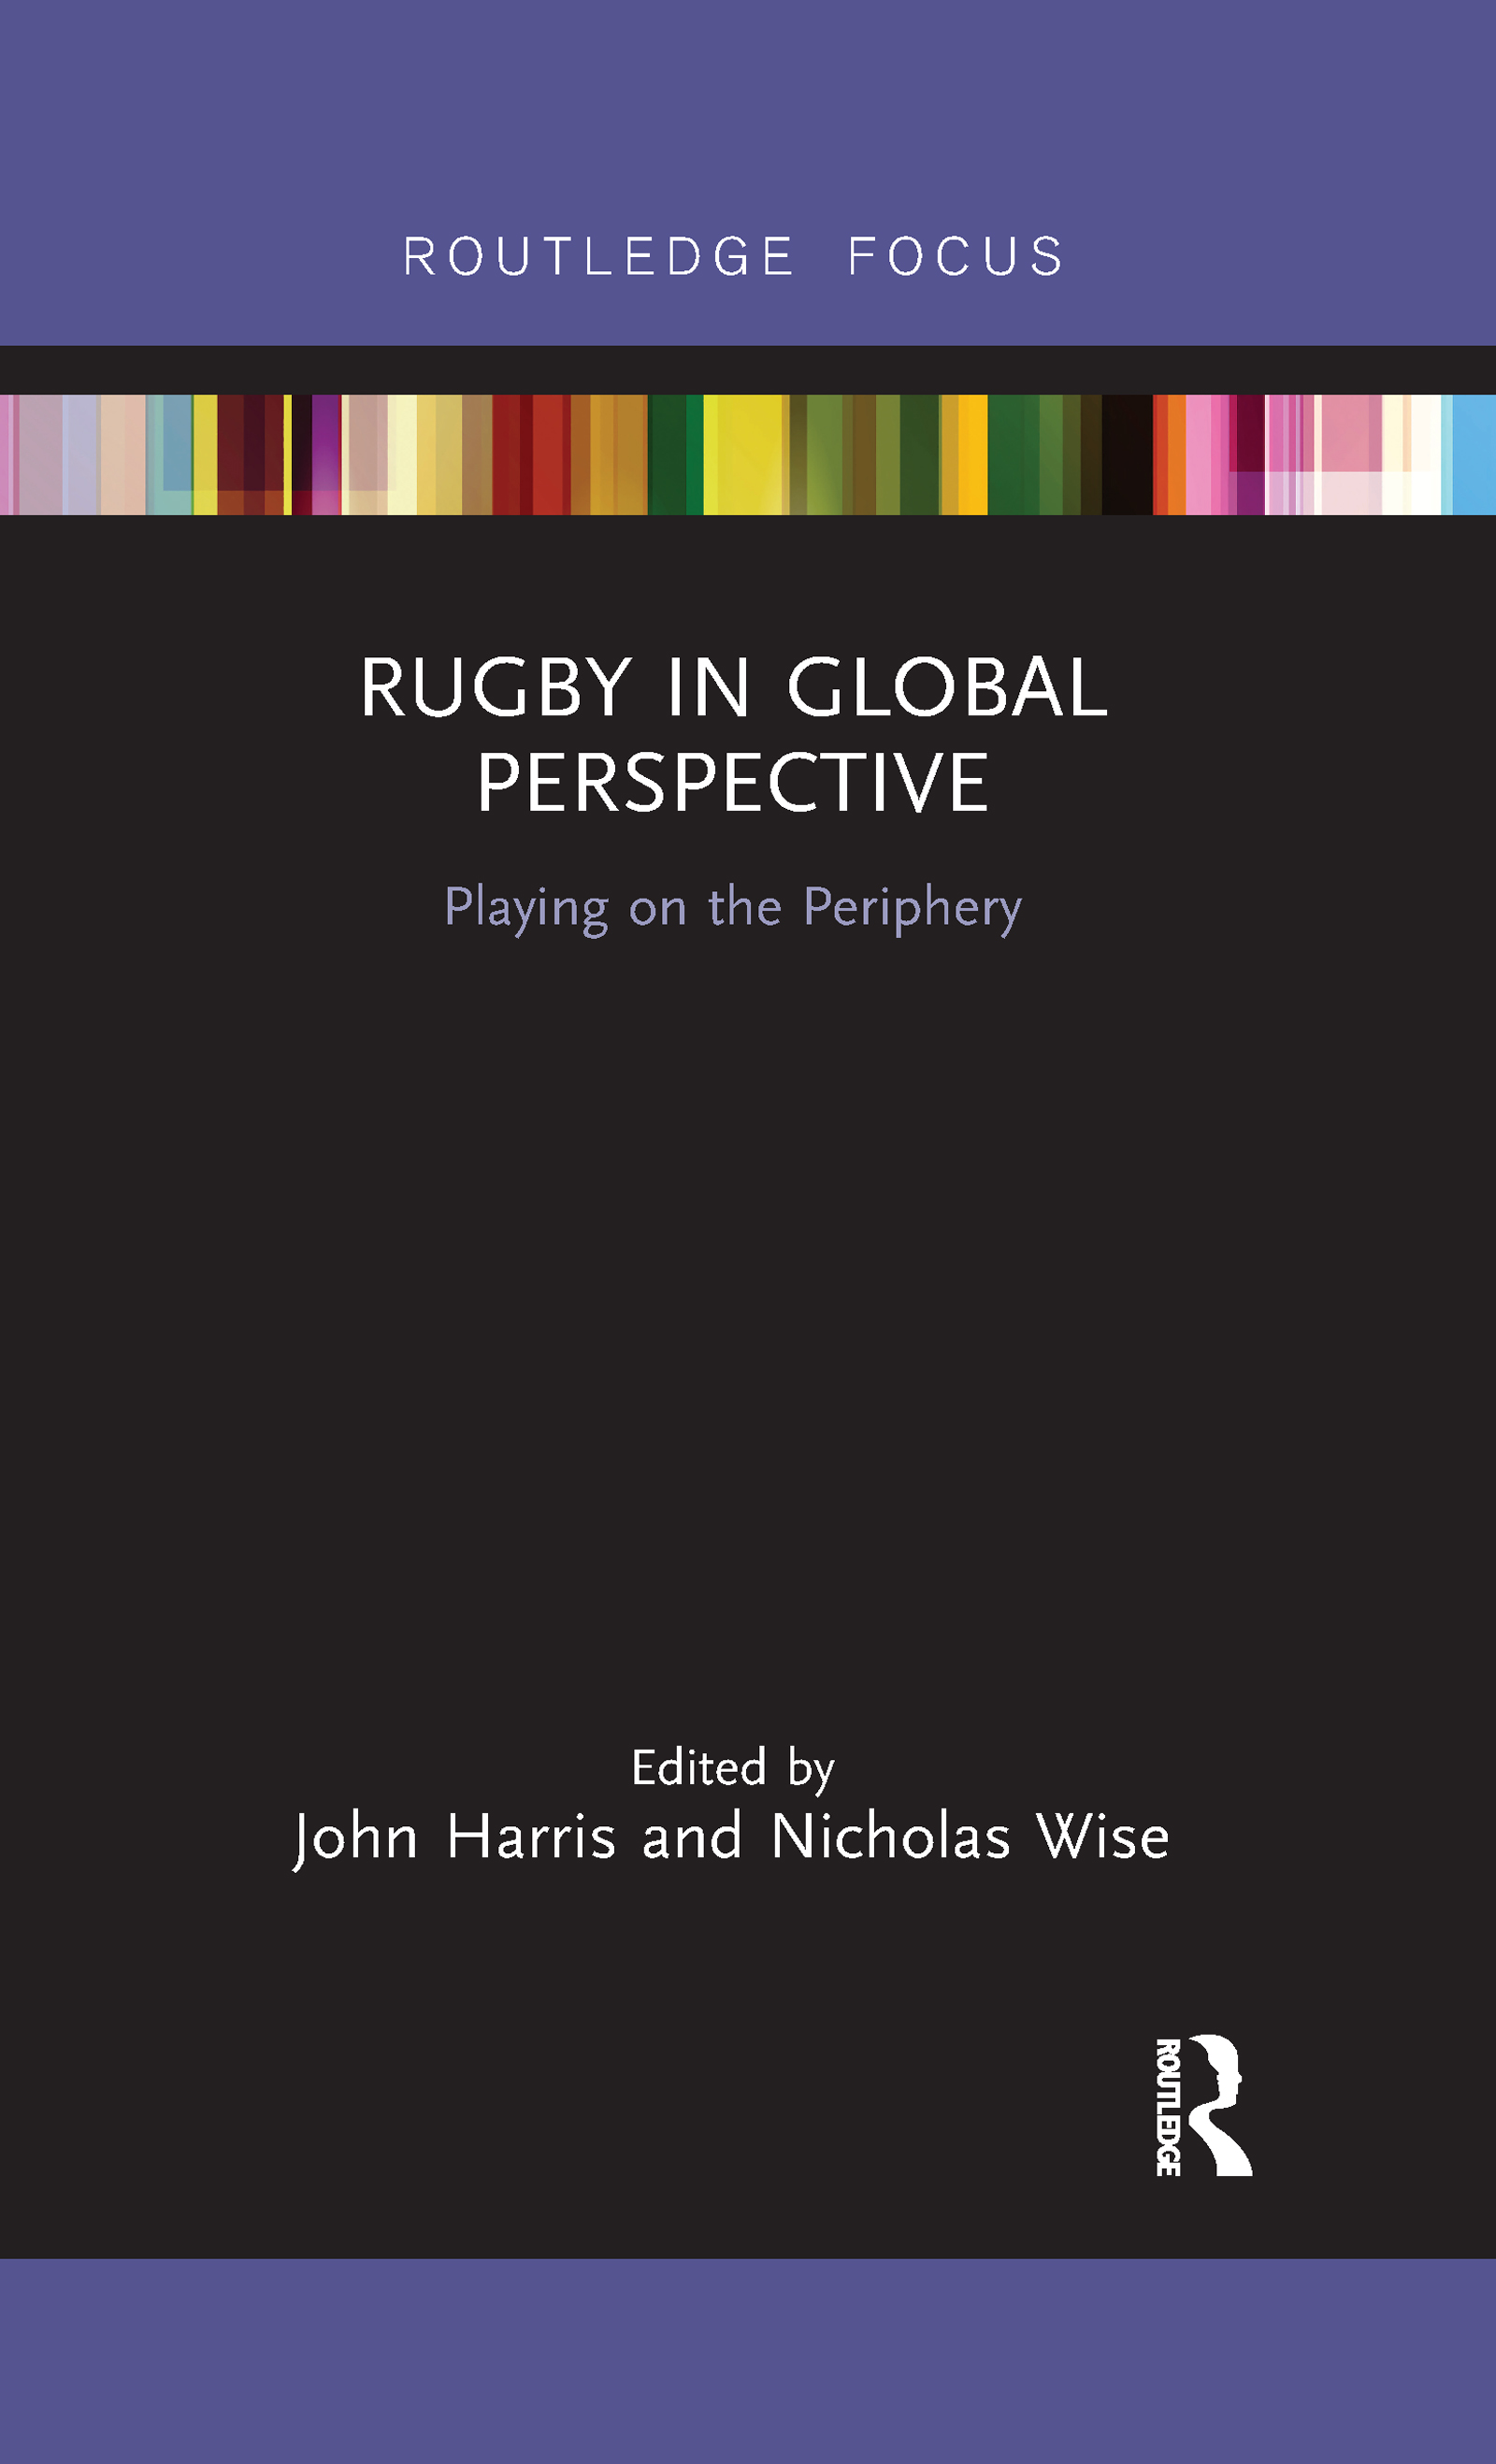 Rugby in Global Perspective